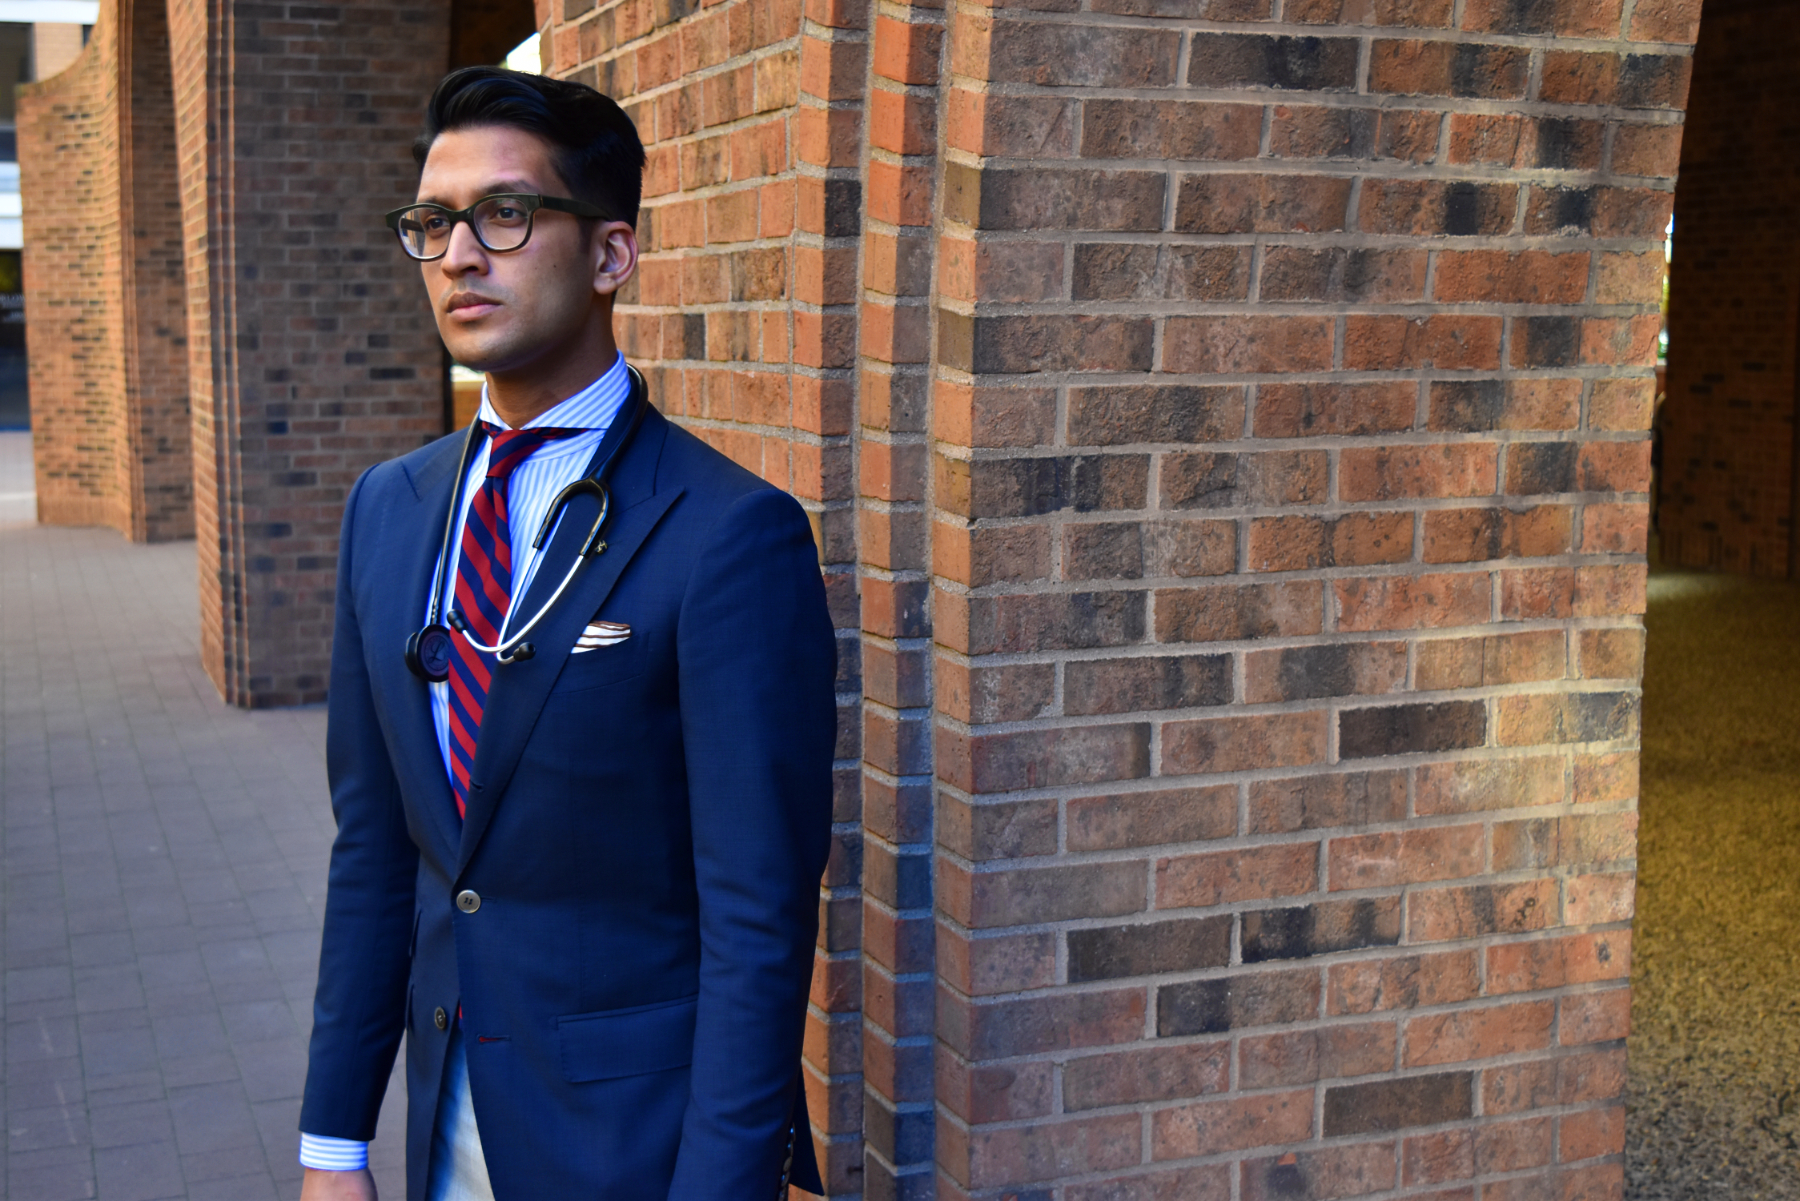 Rajan Singla The Most Sartorial Doctor In Philadelphia